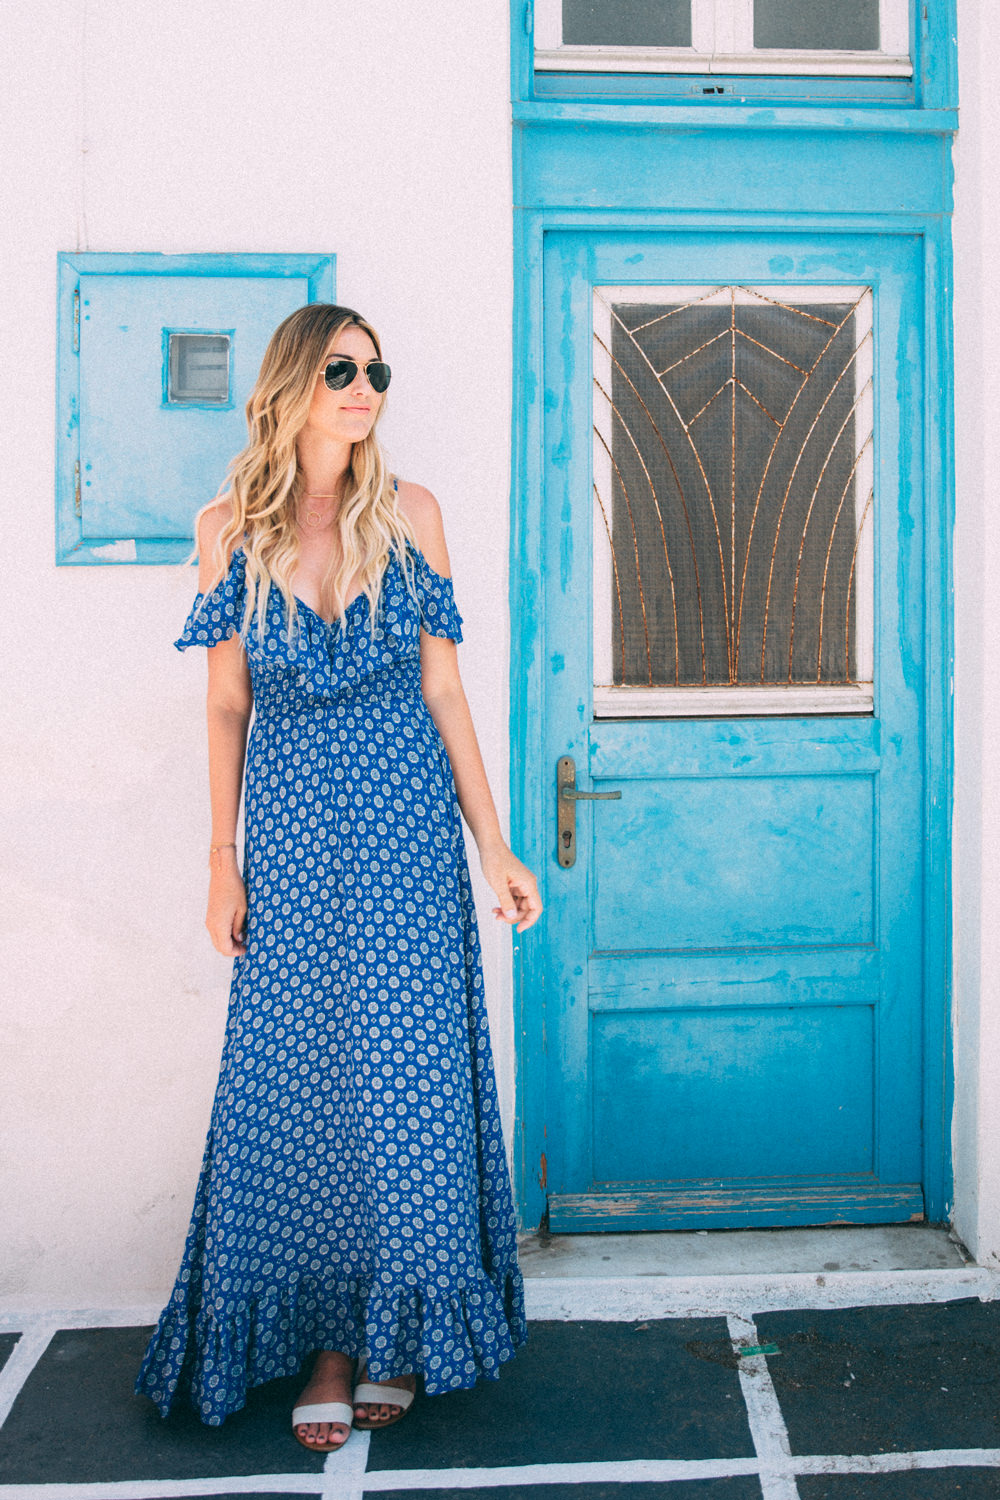 Caitlin Lindquist of the travel blog Dash of Darling shares her adventures in Mykonos, Greece with Royal Caribbean Cruises